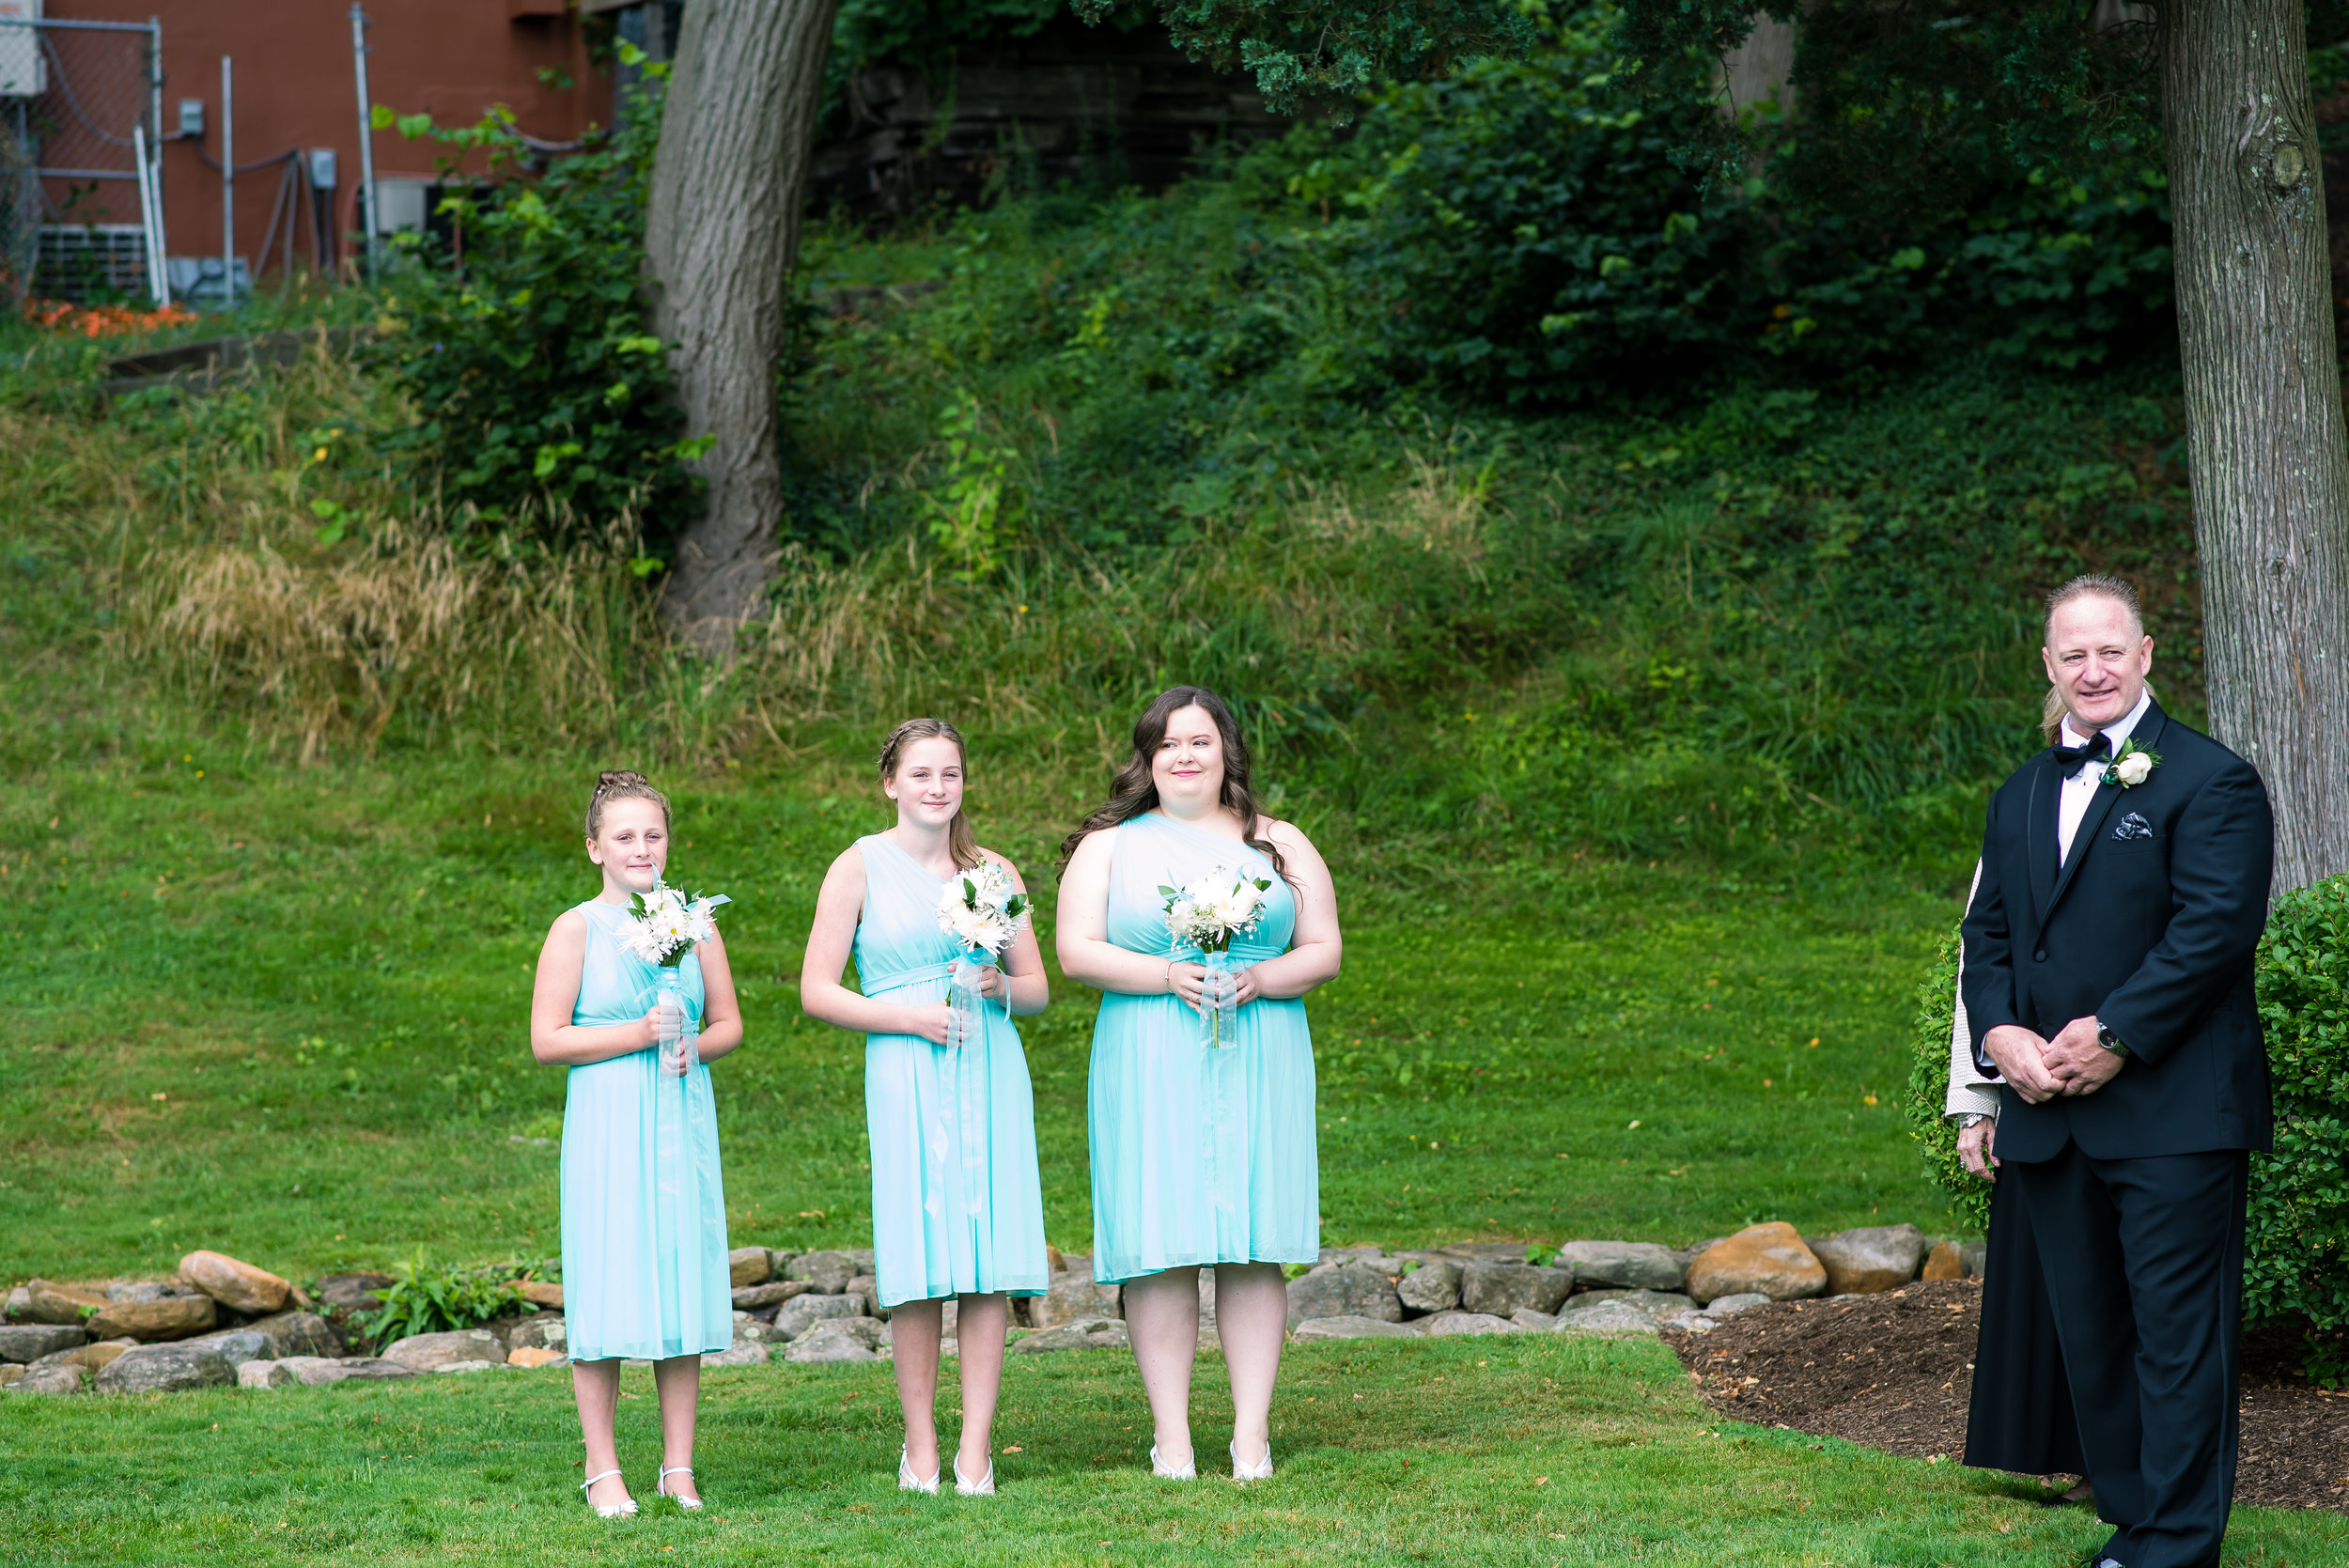 Bridal party waiting for bride Brewster Gardens Plymouth MA (2 of 1).jpg